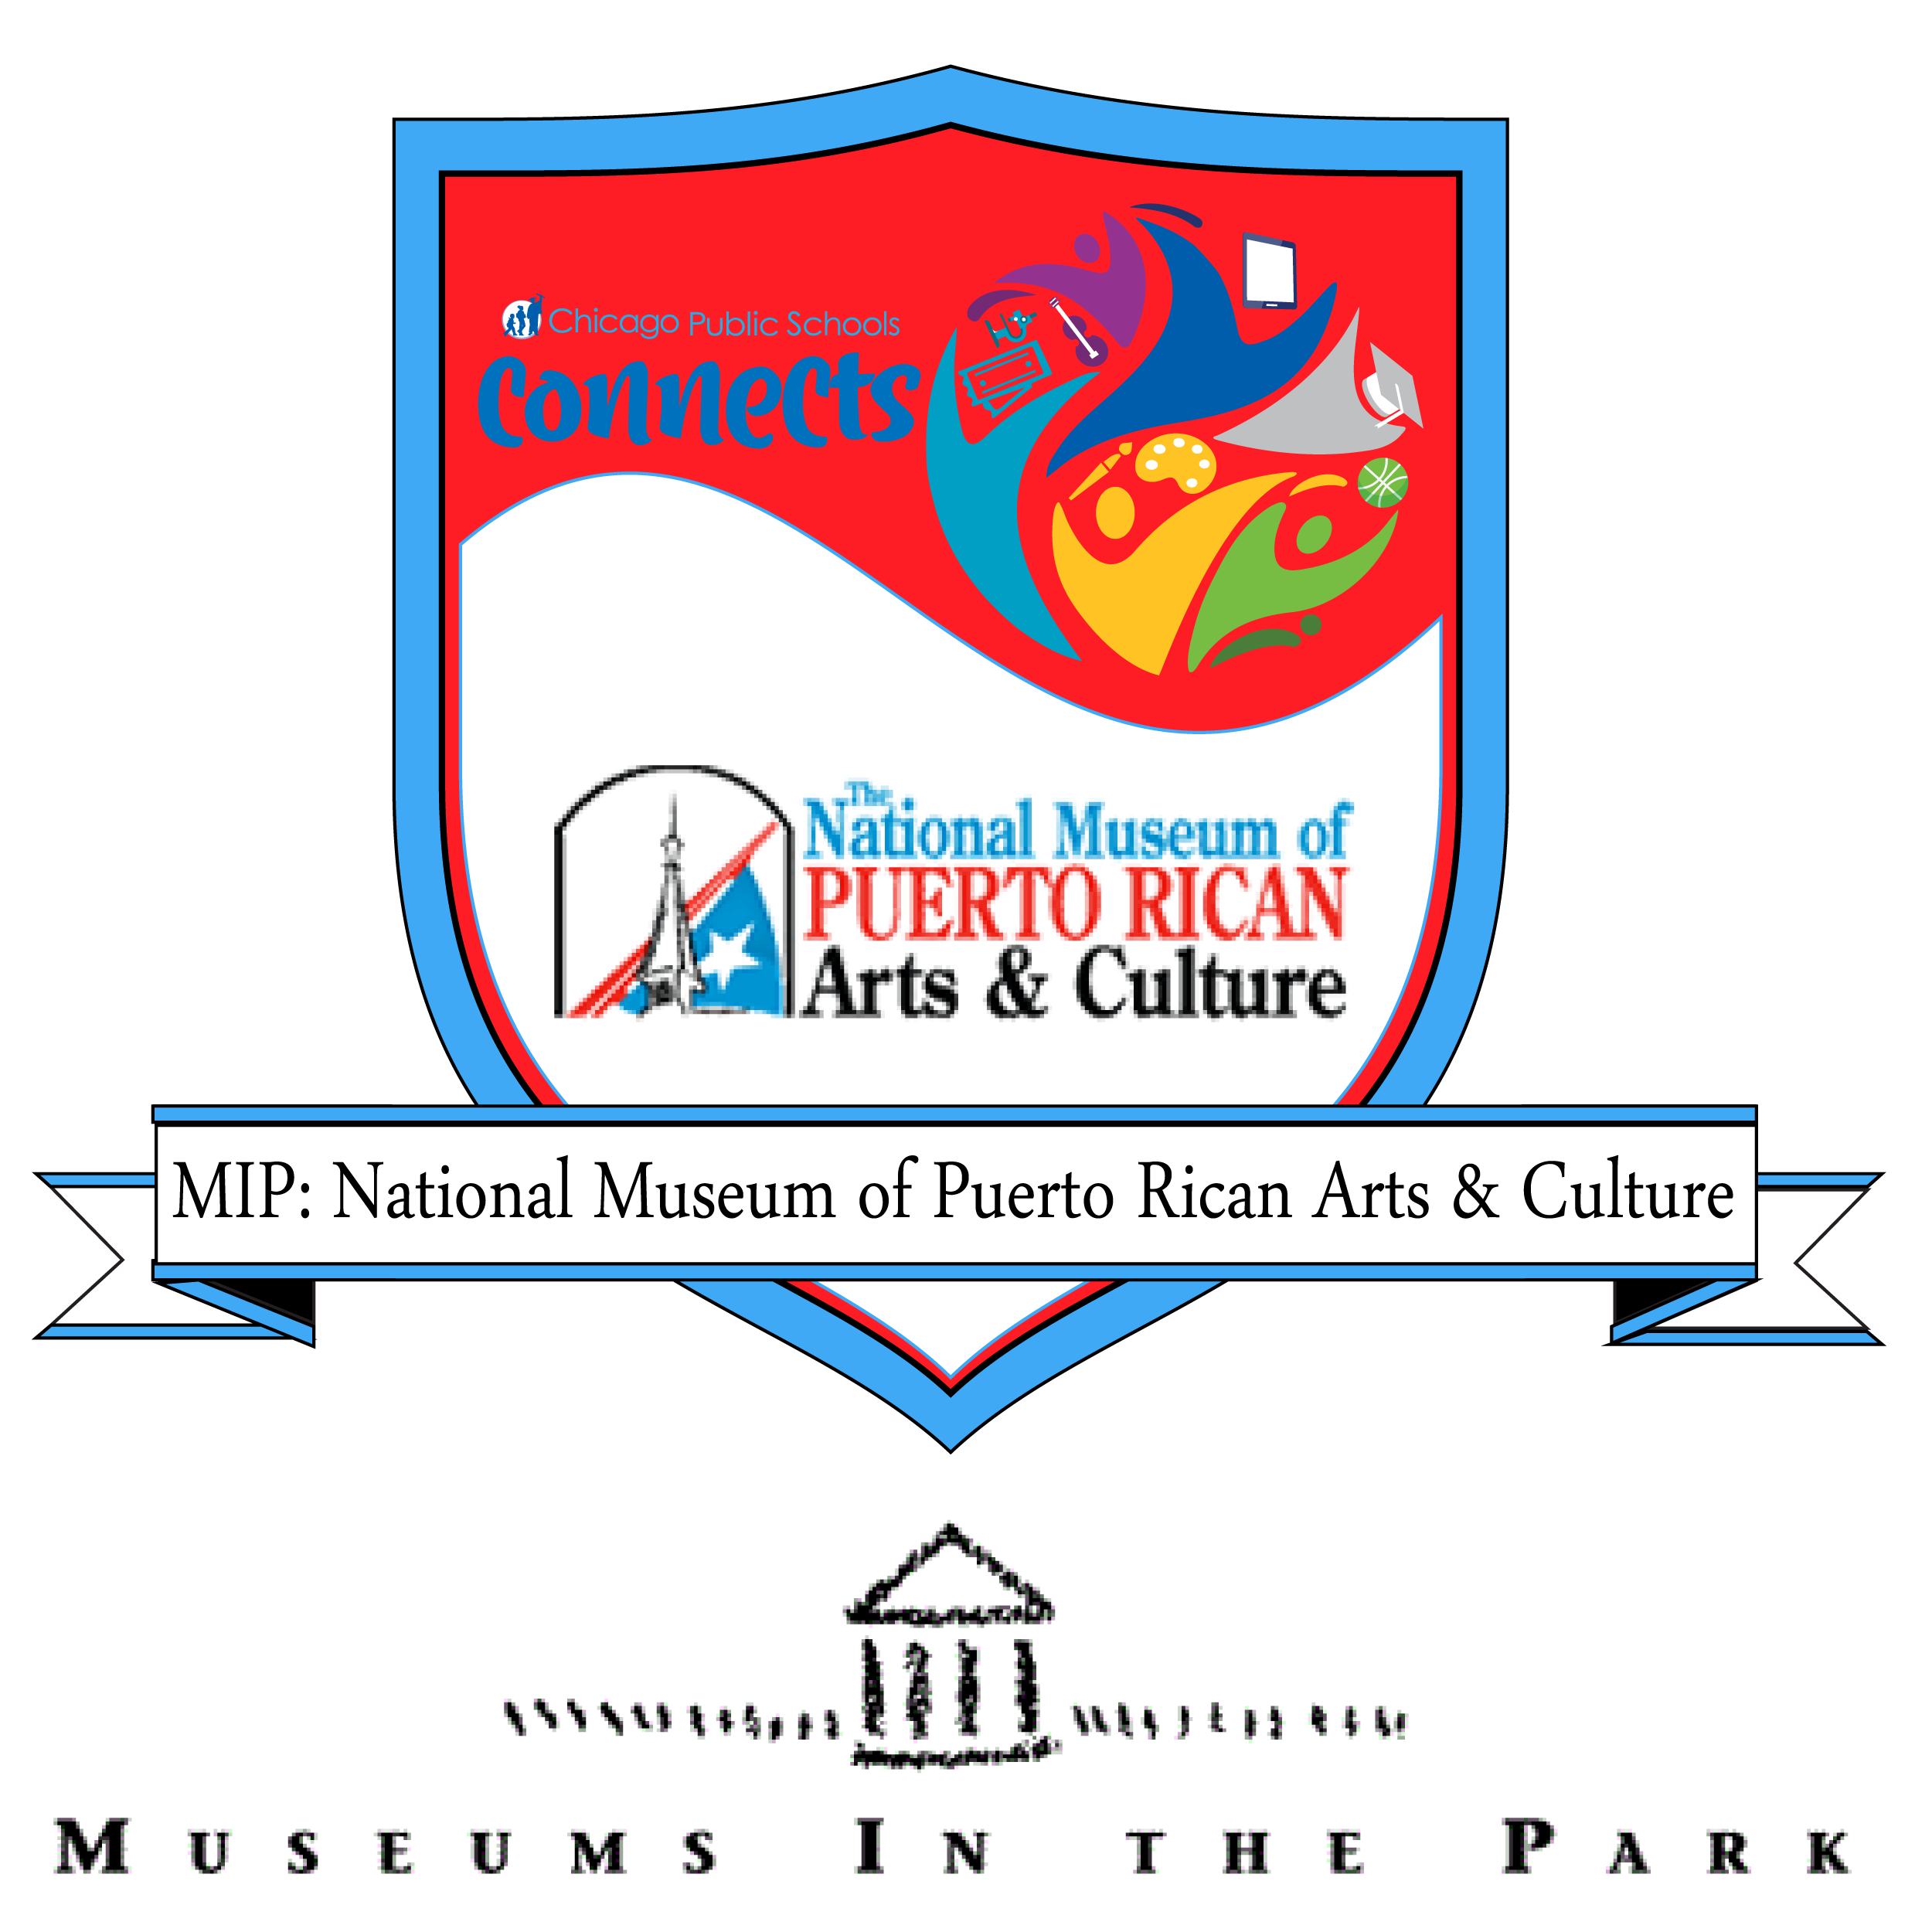 Museums in the Park: National Museum of Puerto Rican Arts and Culture